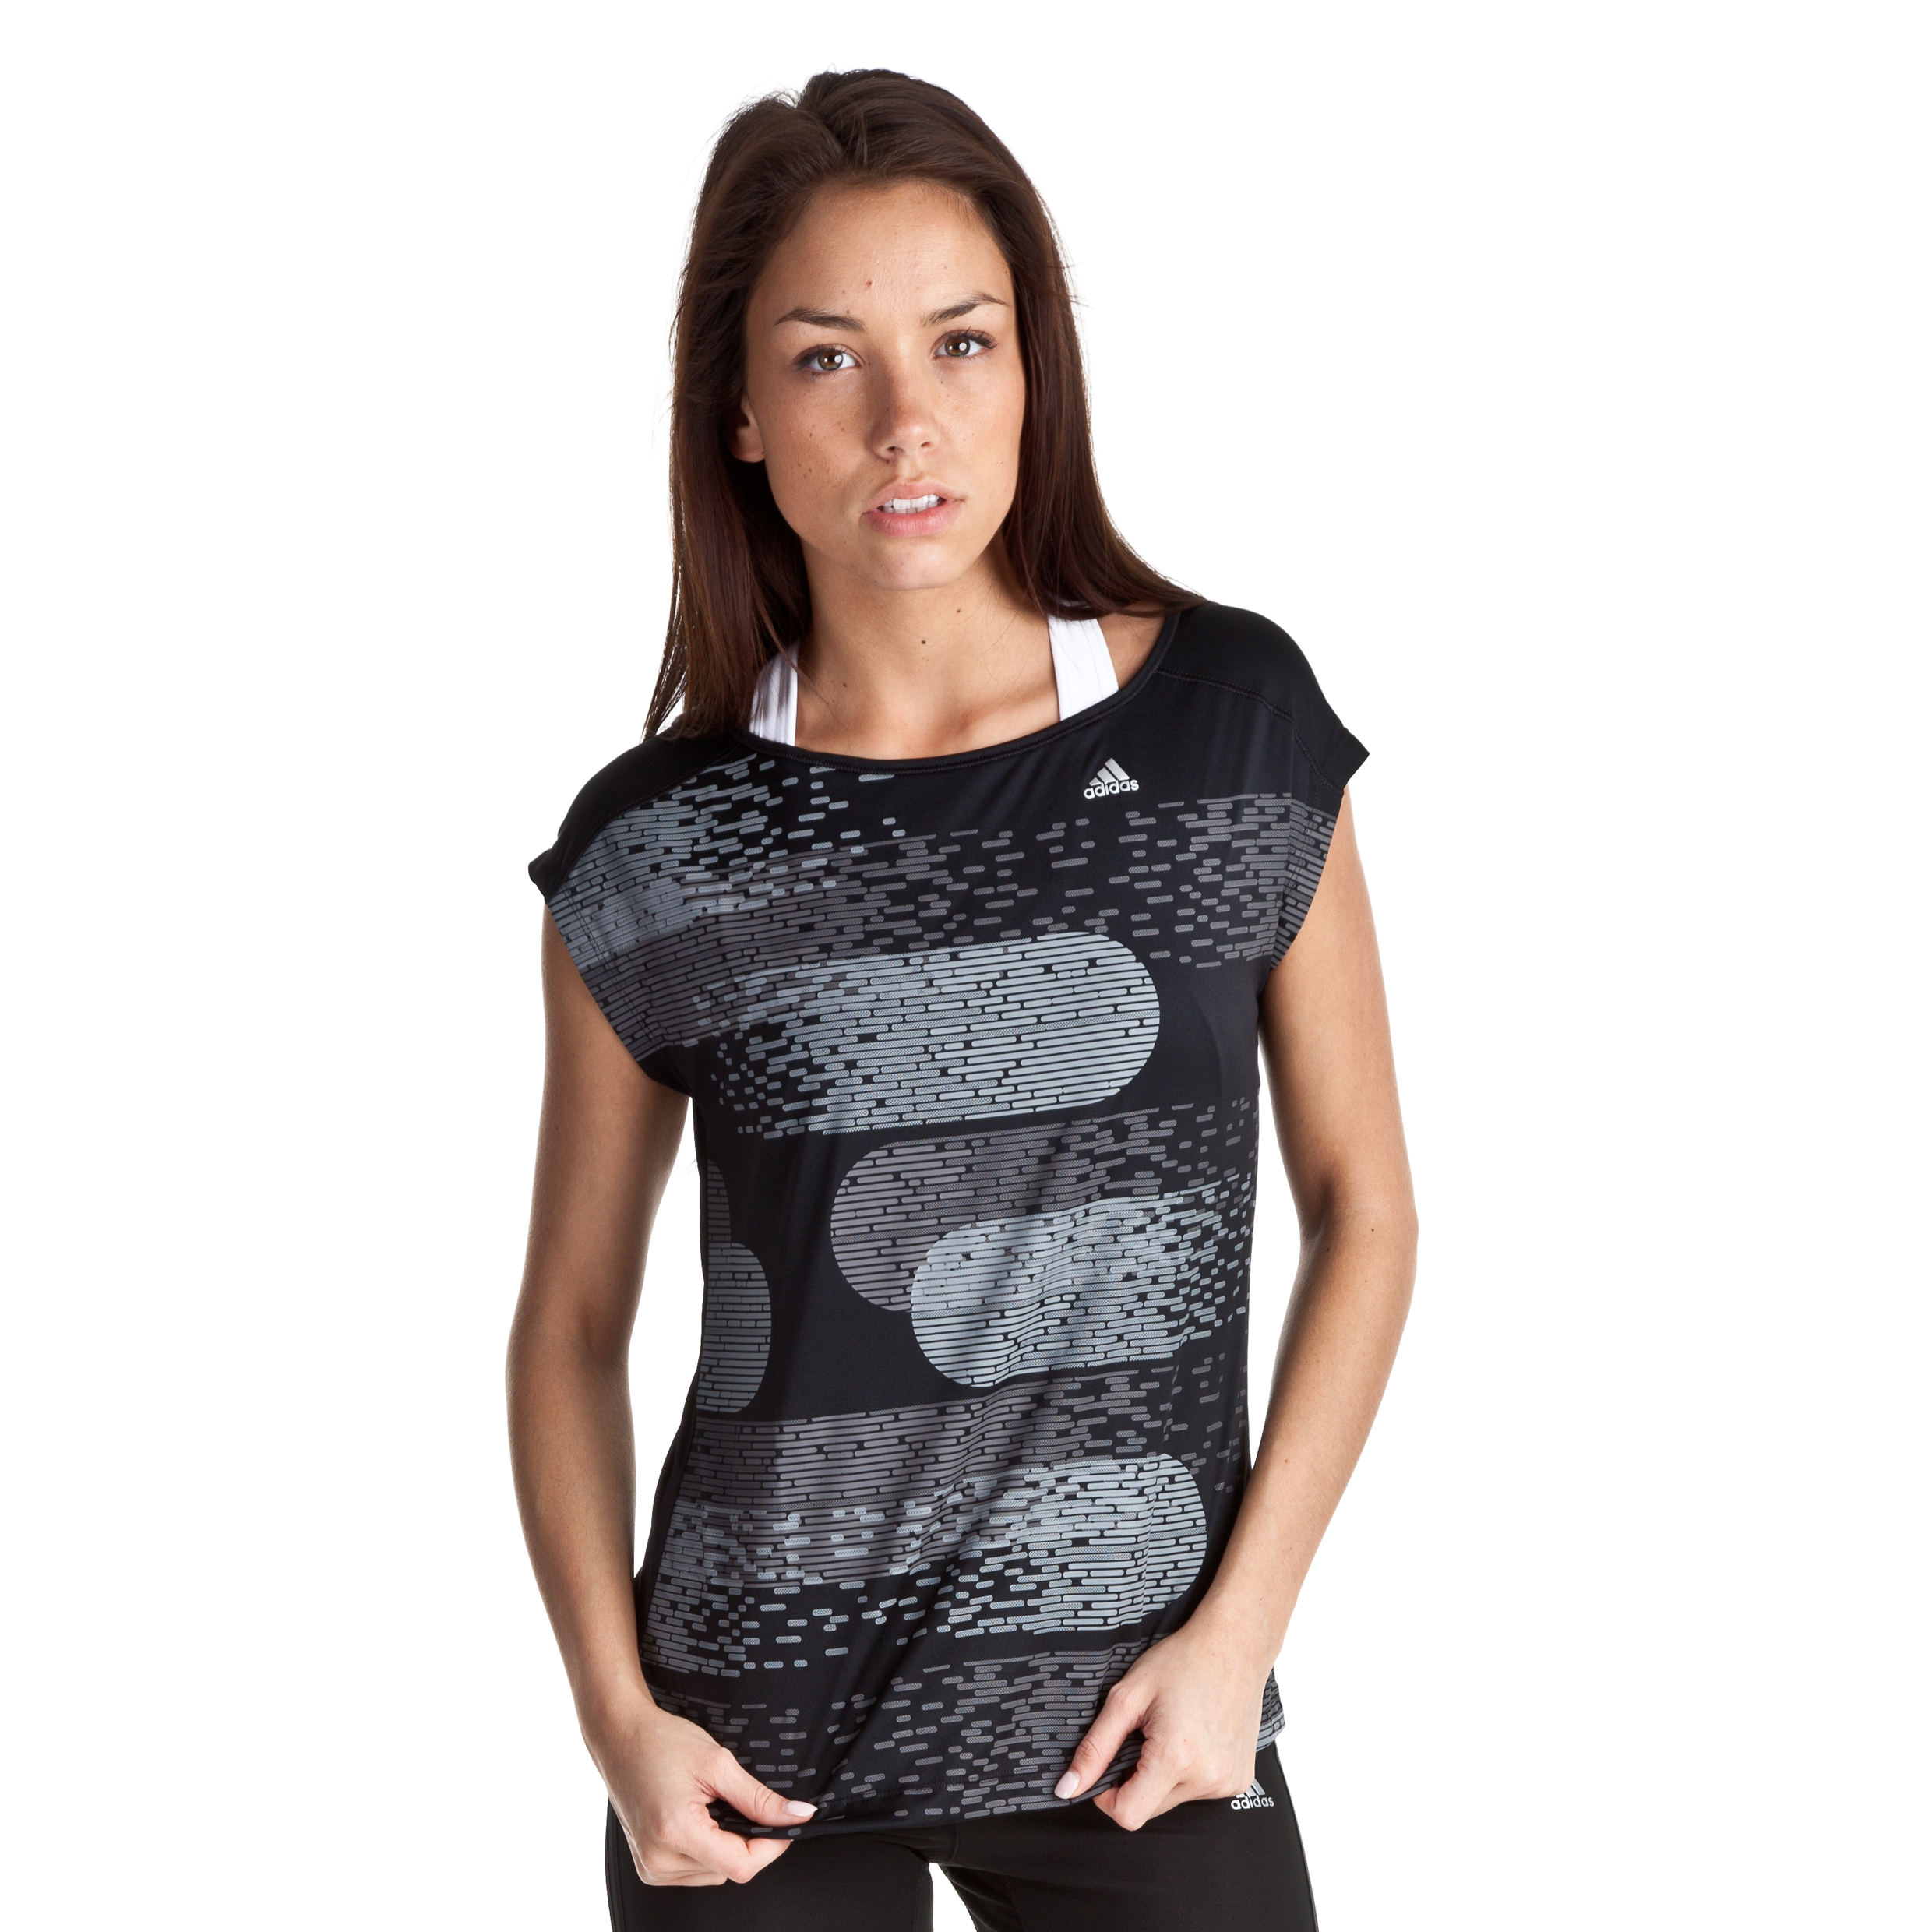 Adidas Climacool Graphic Tee - Black/Matte Silver - Womens